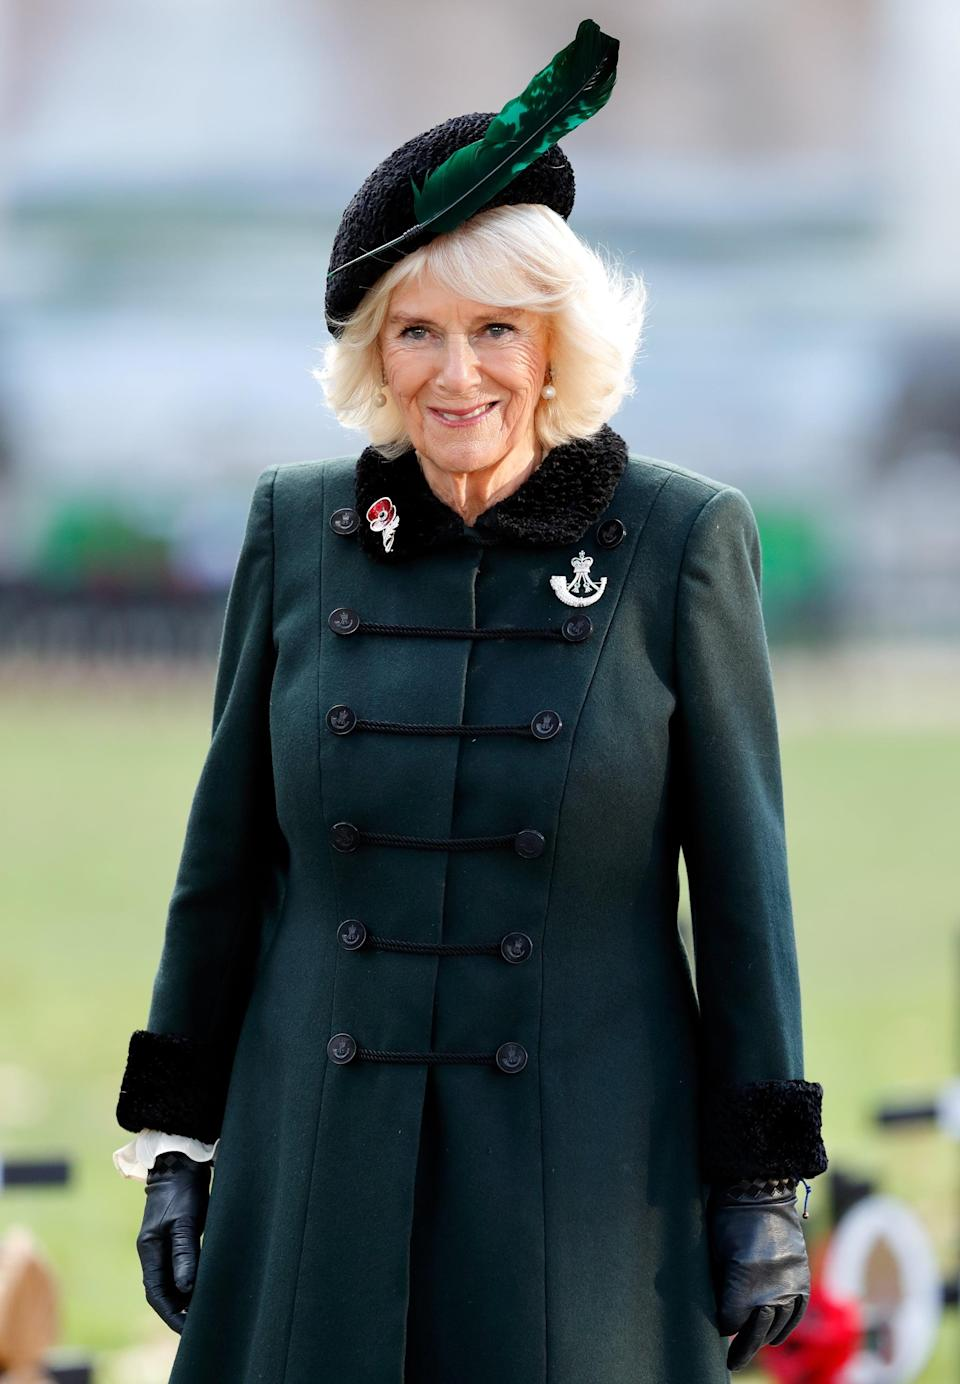 LONDON, UNITED KINGDOM - NOVEMBER 04: (EMBARGOED FOR PUBLICATION IN UK NEWSPAPERS UNTIL 24 HOURS AFTER CREATE DATE AND TIME) Camilla, Duchess of Cornwall (Colonel-in-Chief of The Rifles and Patron of the Poppy Factory) visits the 92nd Field of Remembrance at Westminster Abbey on November 4, 2020 in London, England. The Field of Remembrance has been held in the grounds of Westminster Abbey since November 1928, to commemorate those who have lost their lives in the Armed Forces. (Photo by Max Mumby/Indigo/Getty Images)